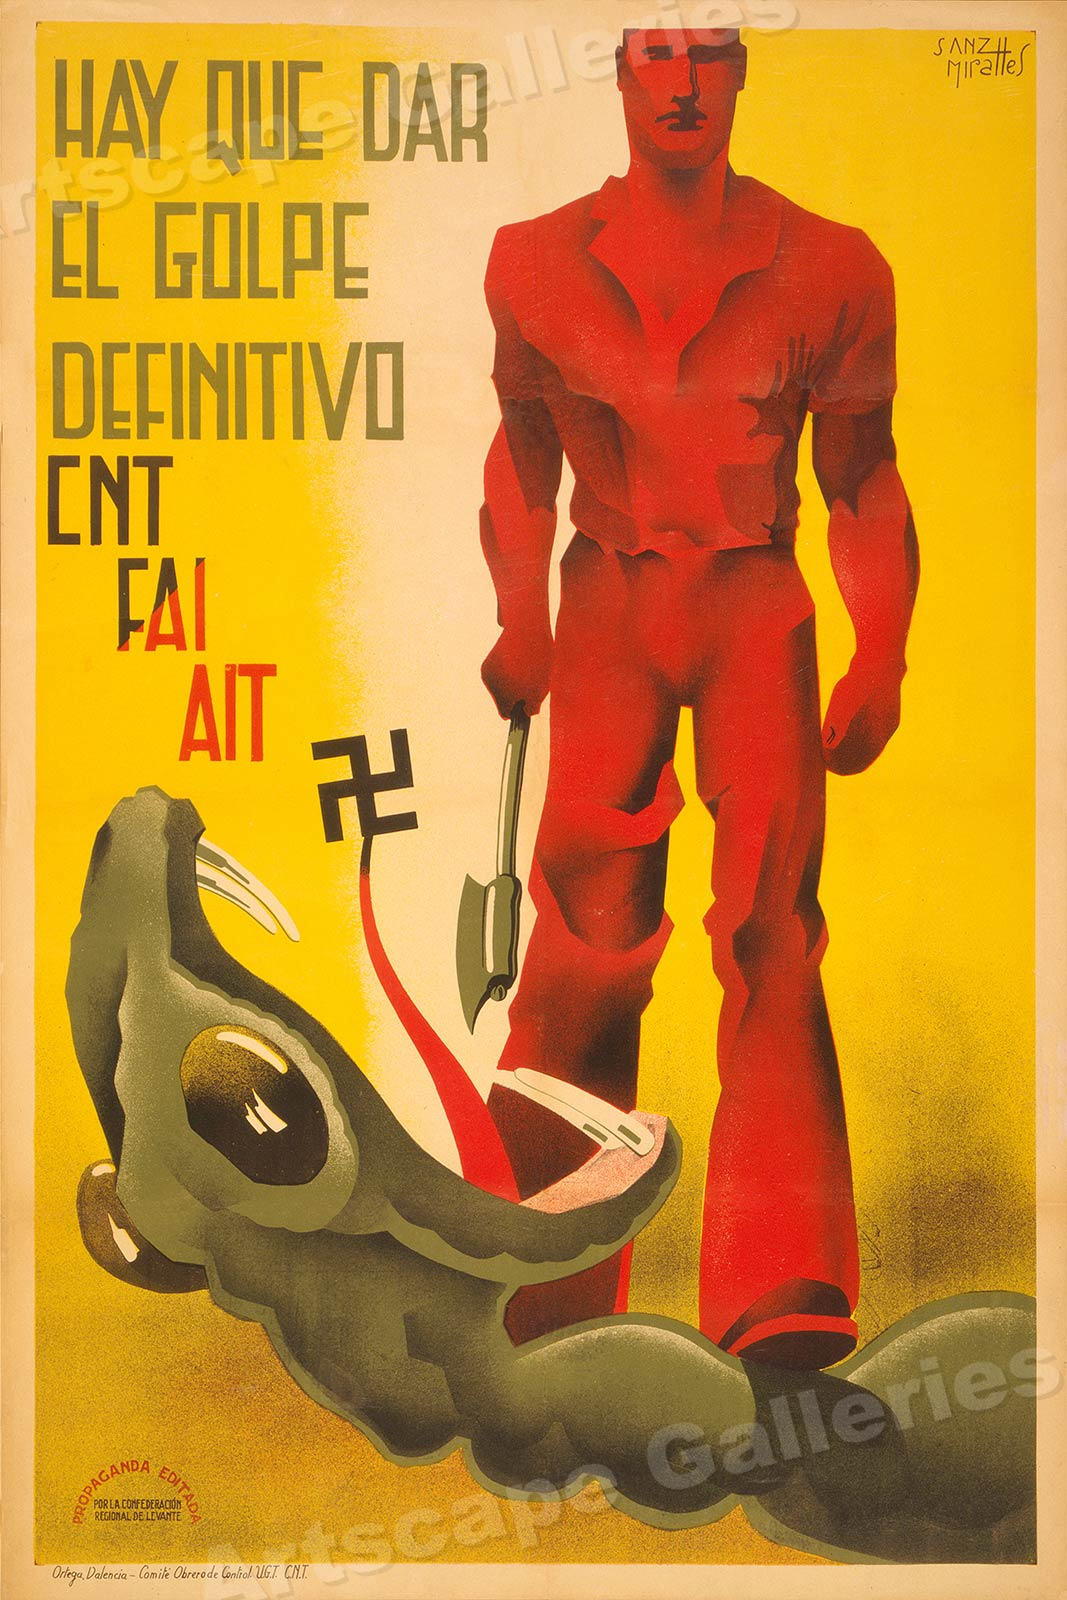 20x30 1930s Spanish Civil War Poster Give the Definitive Blow